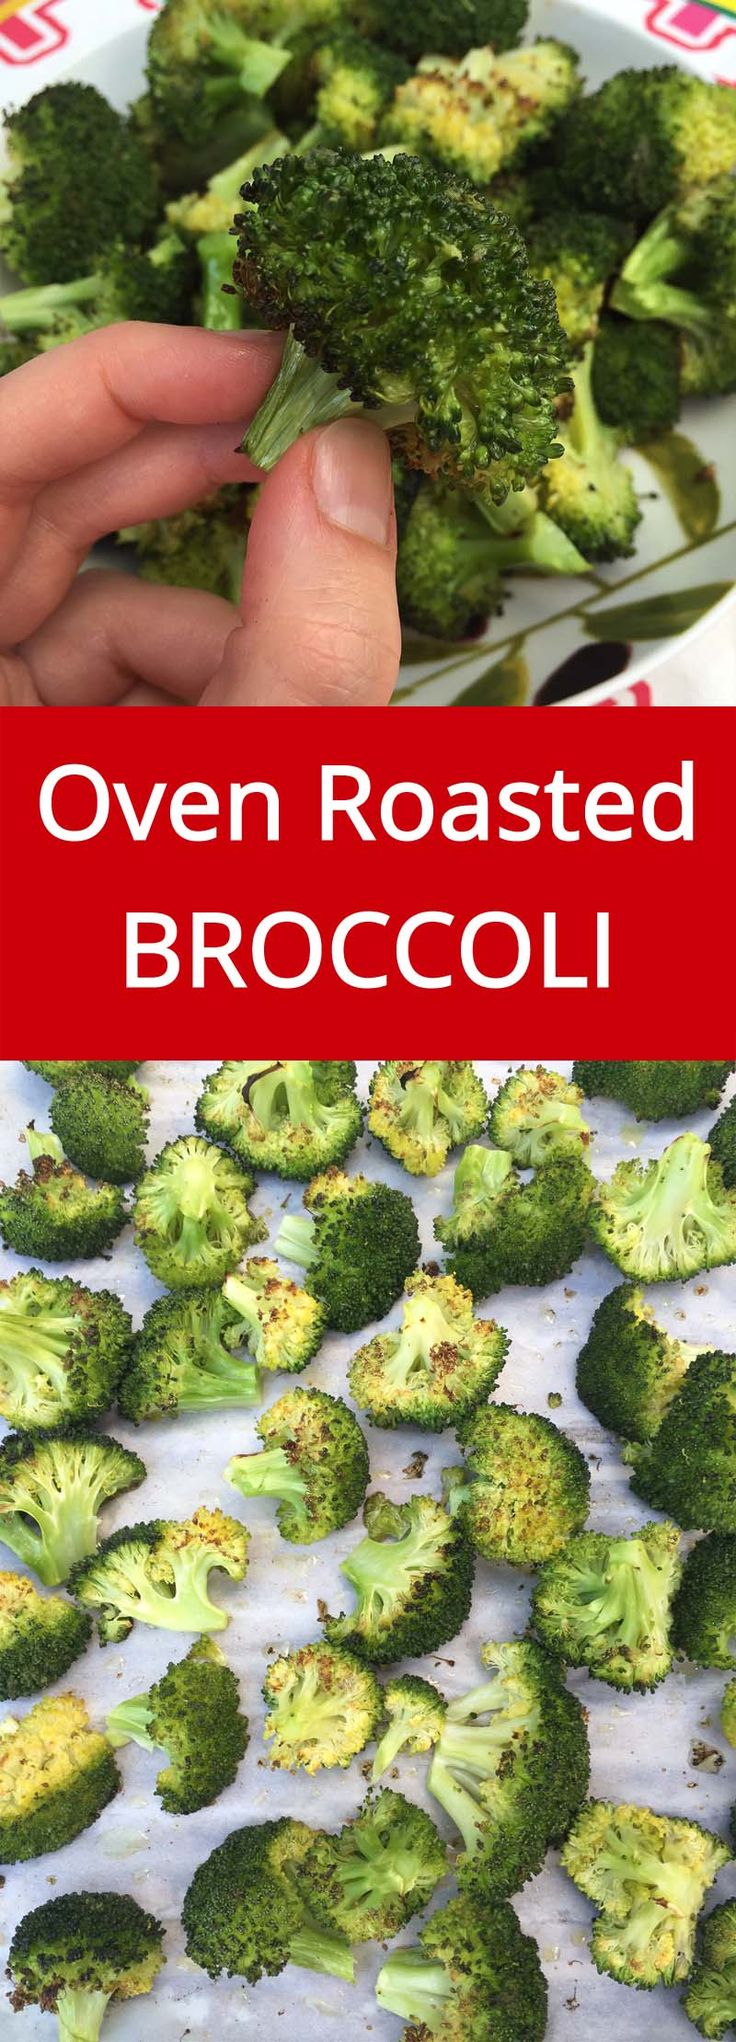 Roasted Broccoli is my favorite way of eating broccoli ever! So yummy and…